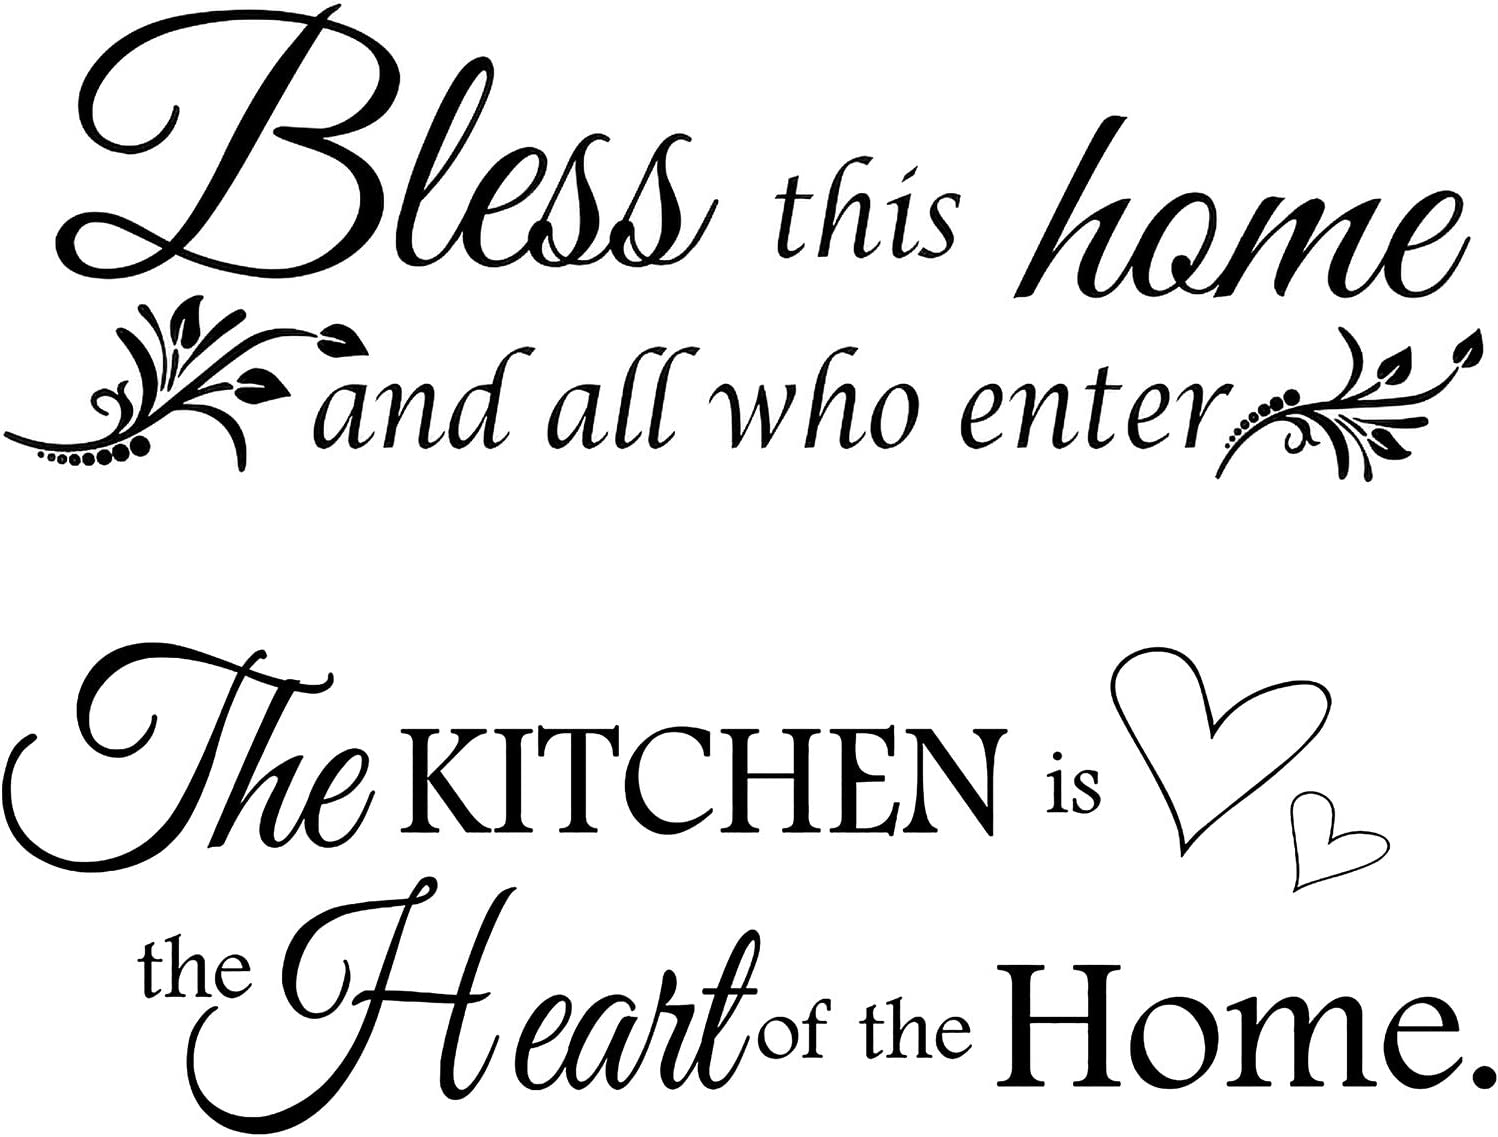 2 Sheets Vinyl Wall Quote The Kitchen Quote Wall Stickers Bless This Home and All Who Enter Kitchen Vinyl Wall Quote Art Dining Room Entryway and Living Room Wall Decal Home Decor, 12 x 35.4 Inch